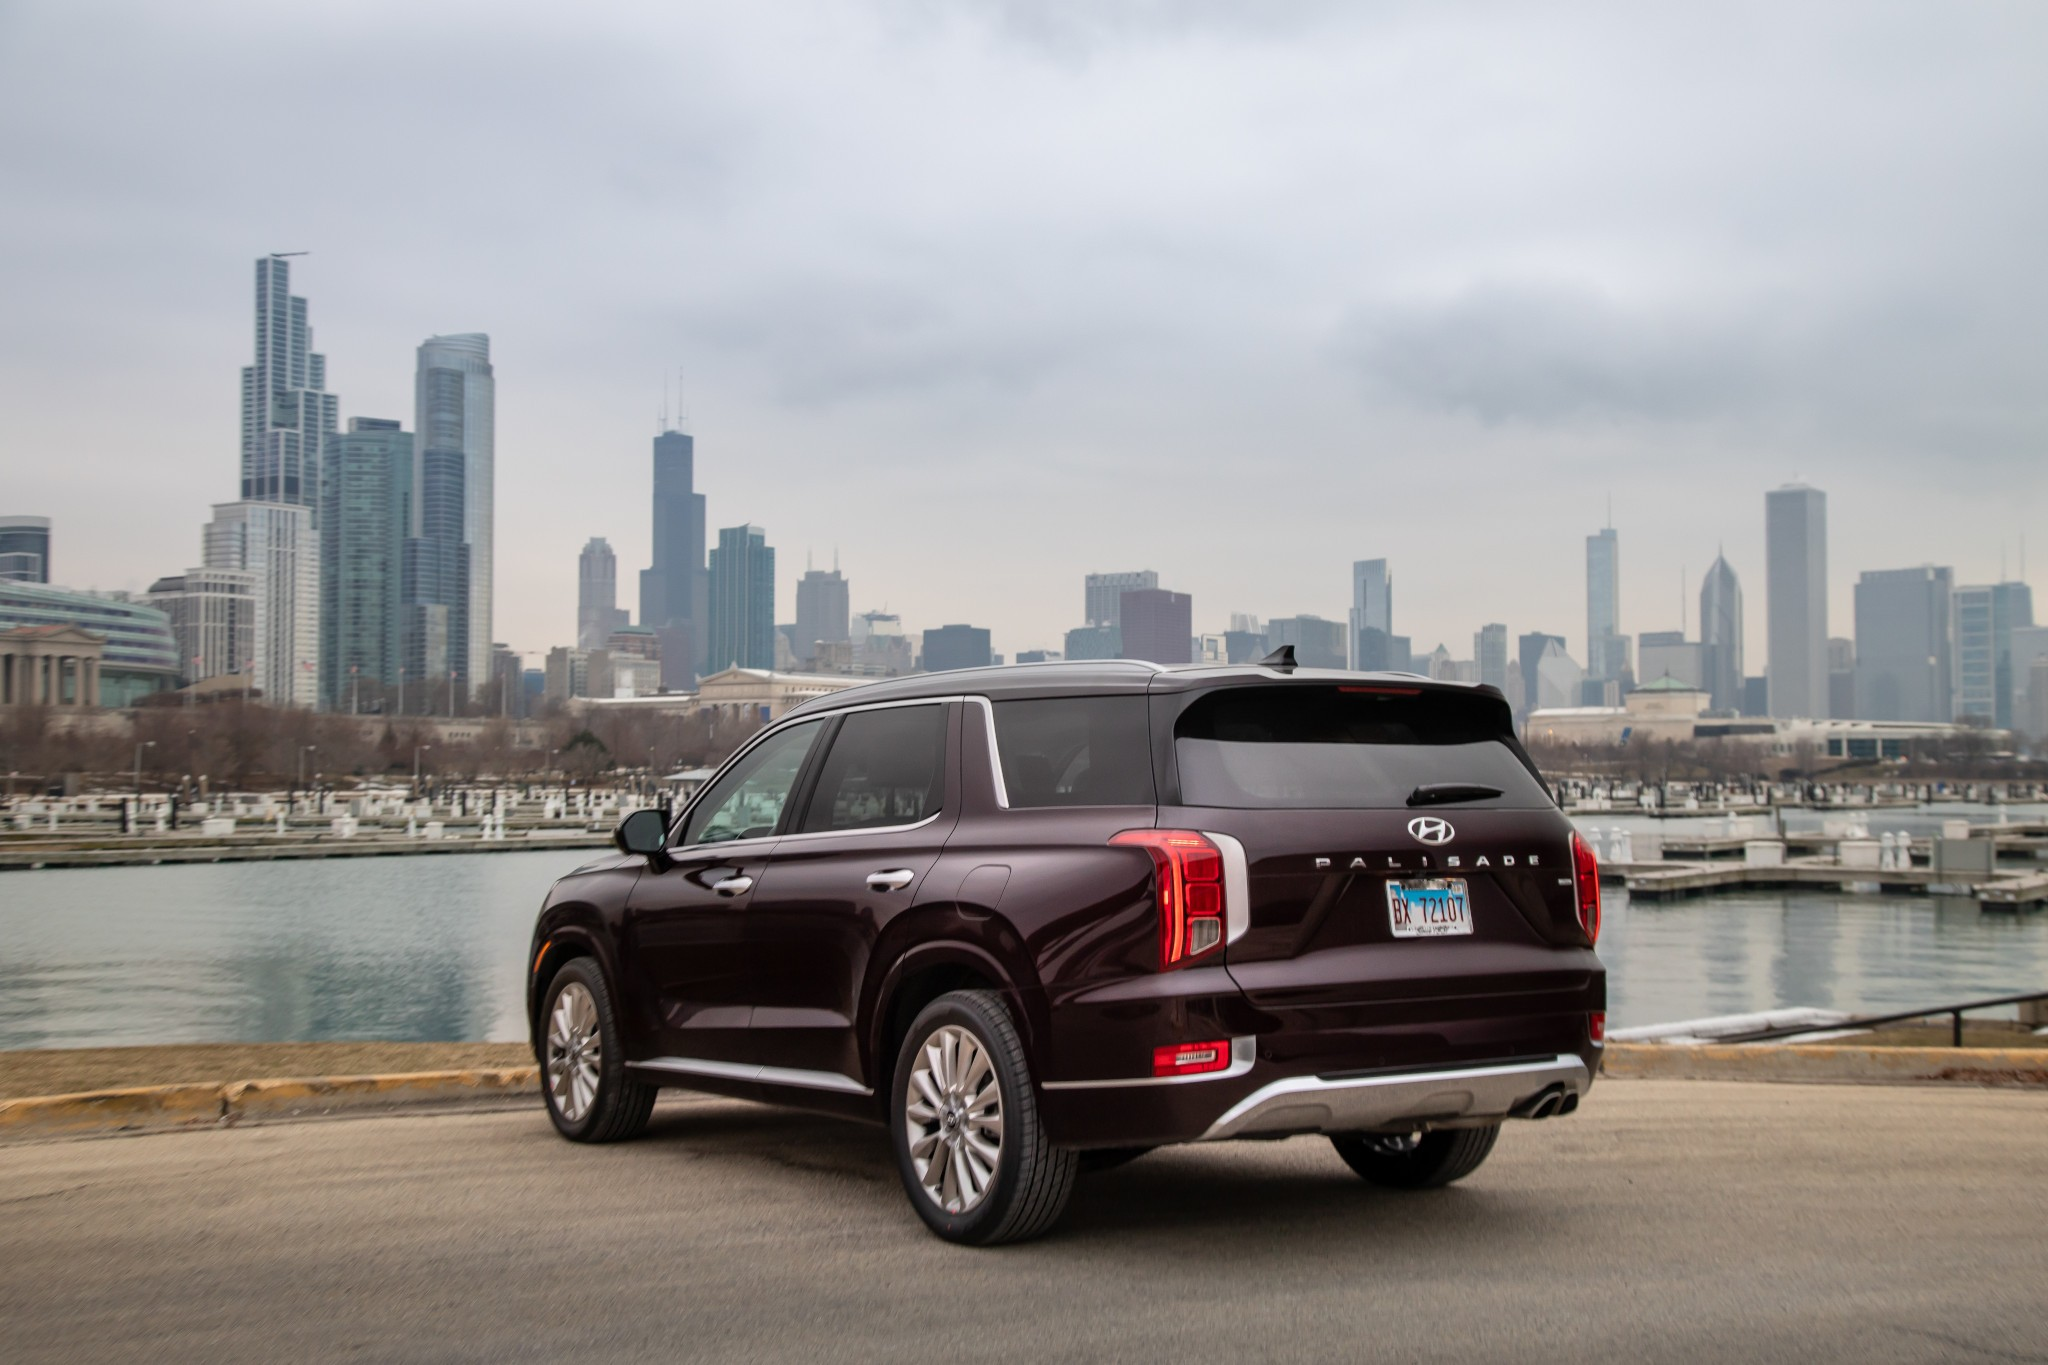 2020 Hyundai Palisade: 8 Things We Like (and 7 Not So Much)